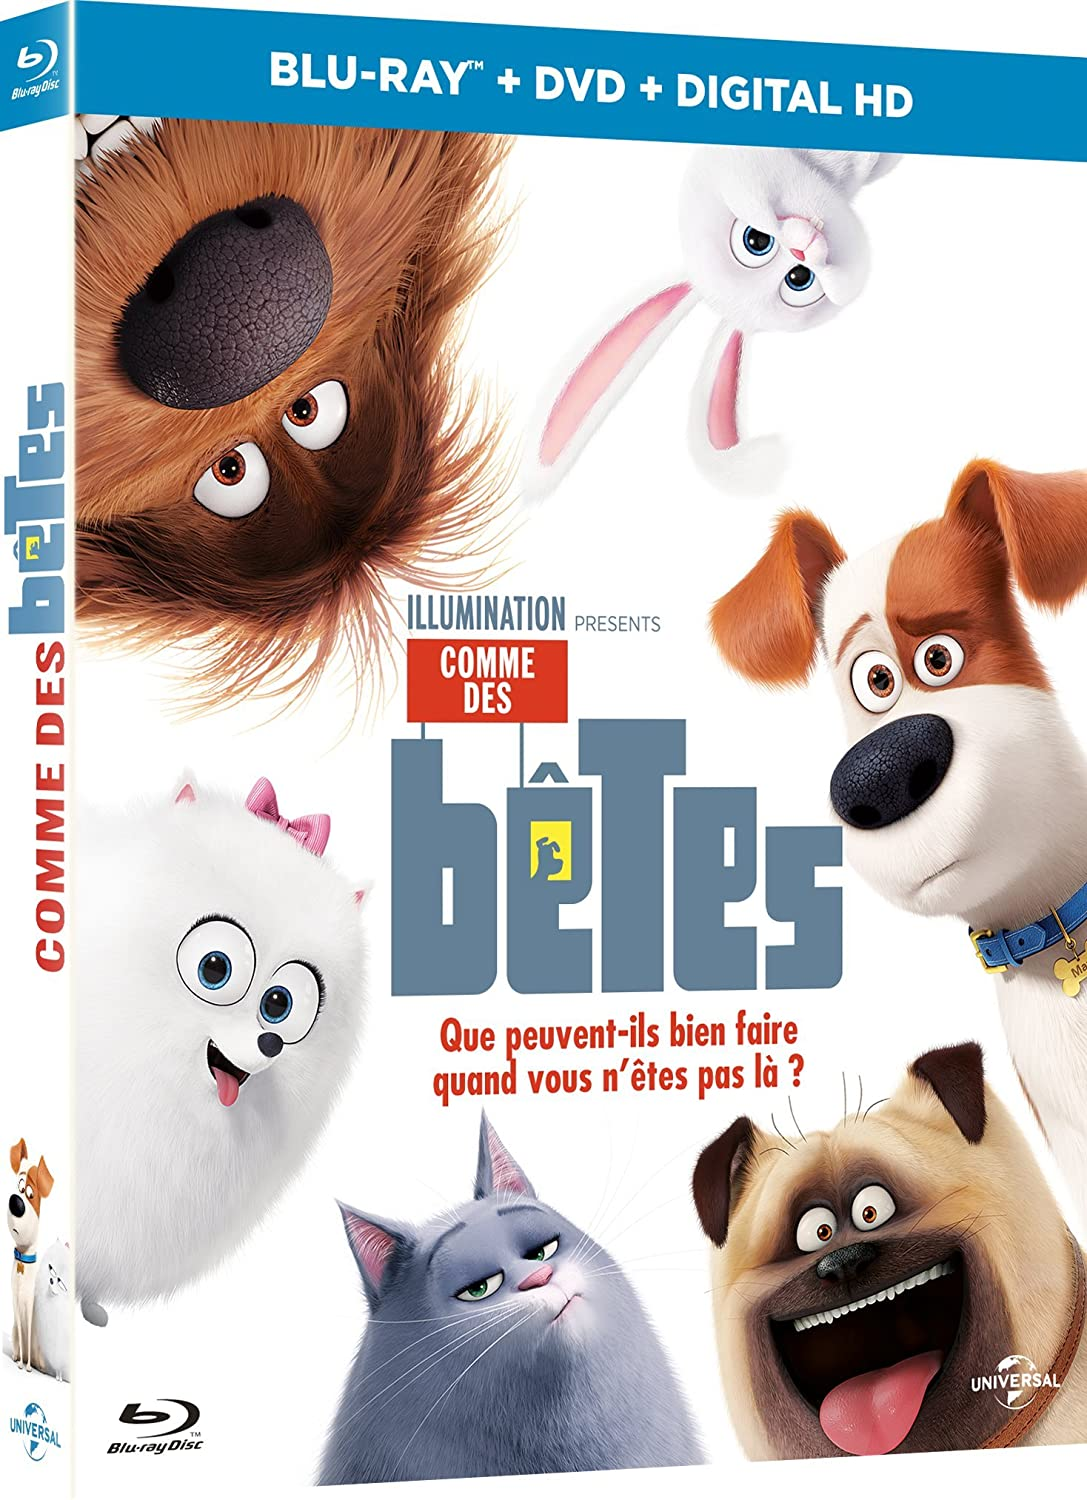 Comme des bêtes TRUEFRENCH BLURAY 1080p